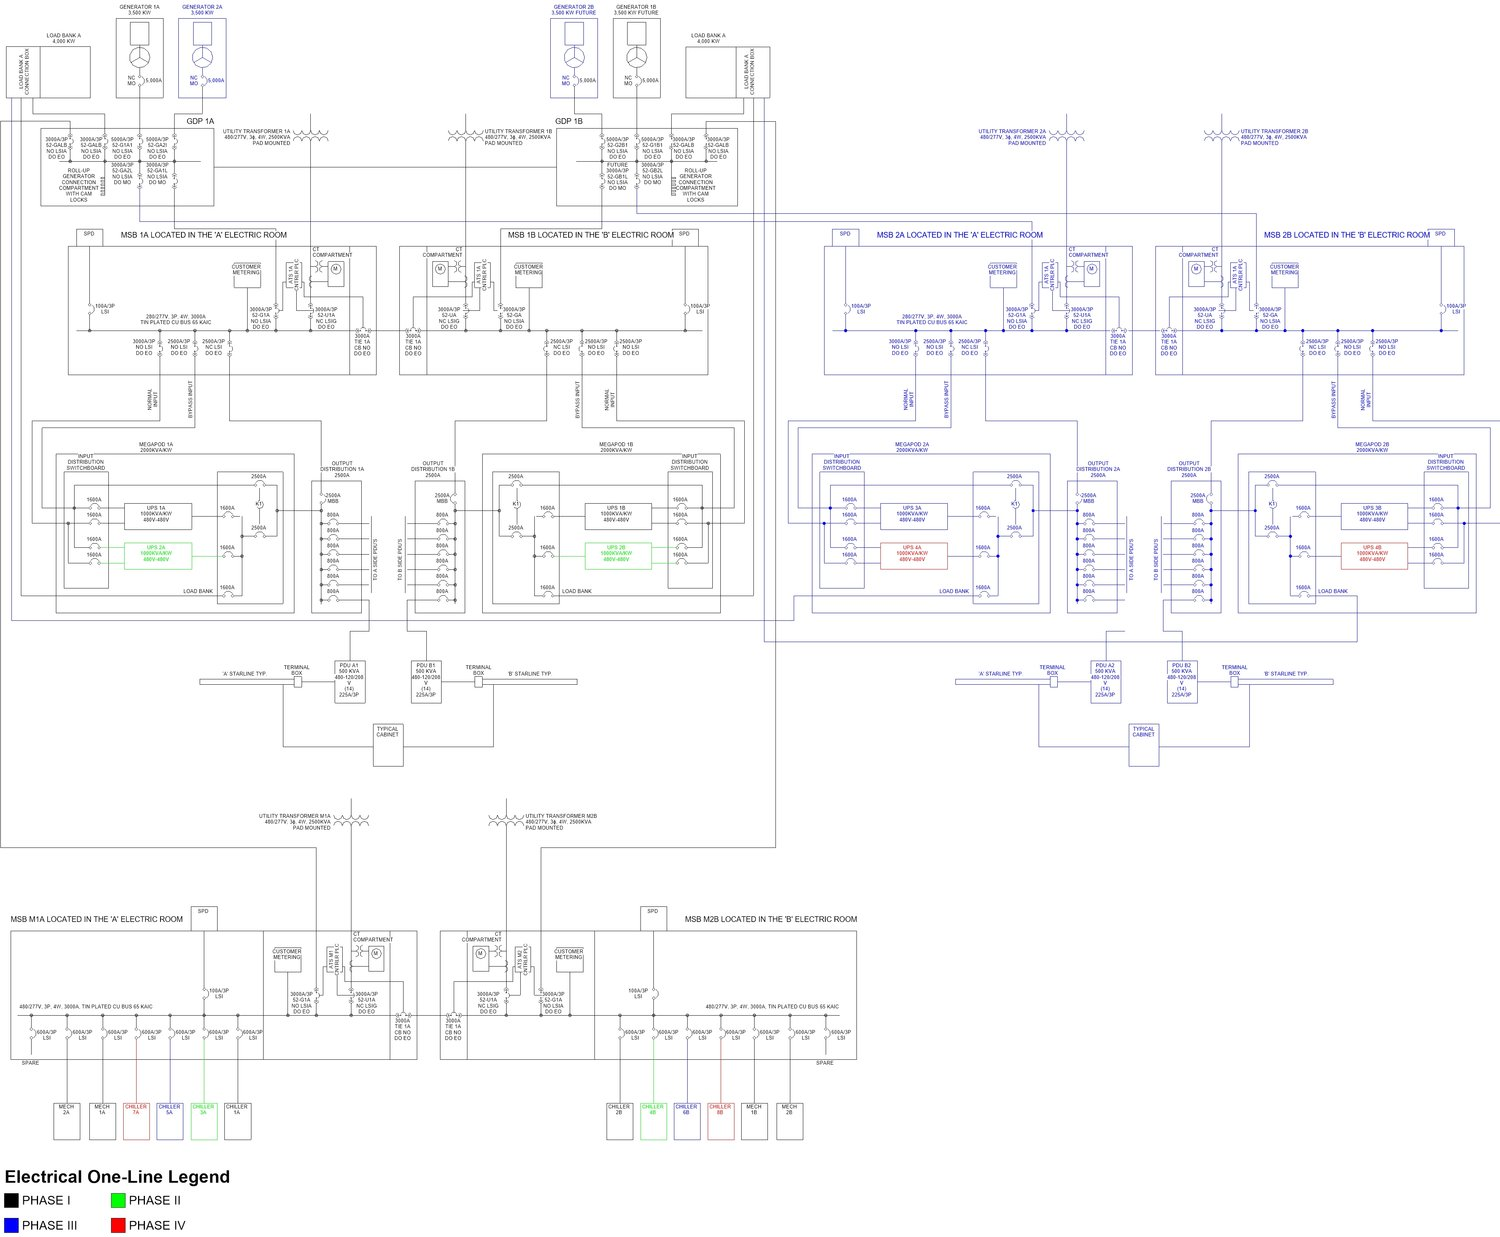 electrical diagram for data center images how to guide and refrence. Black Bedroom Furniture Sets. Home Design Ideas